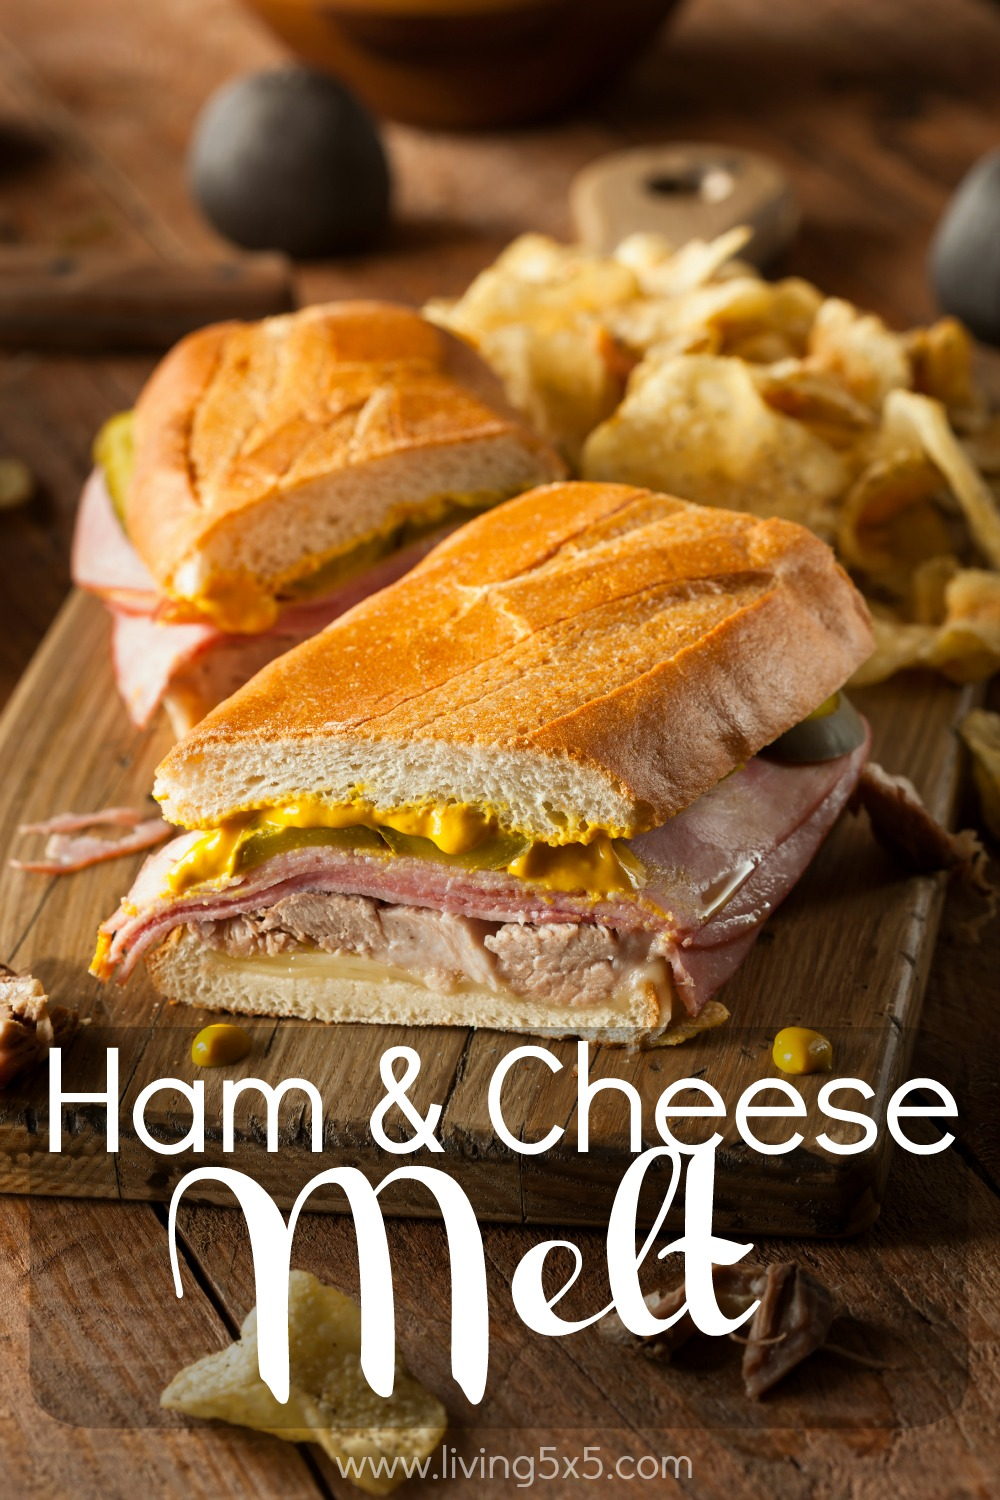 If you love melty sandwiches, try one of my favorite go-to's from Emeril Lagasse's recipe. This ham and cheese melt is delicious!